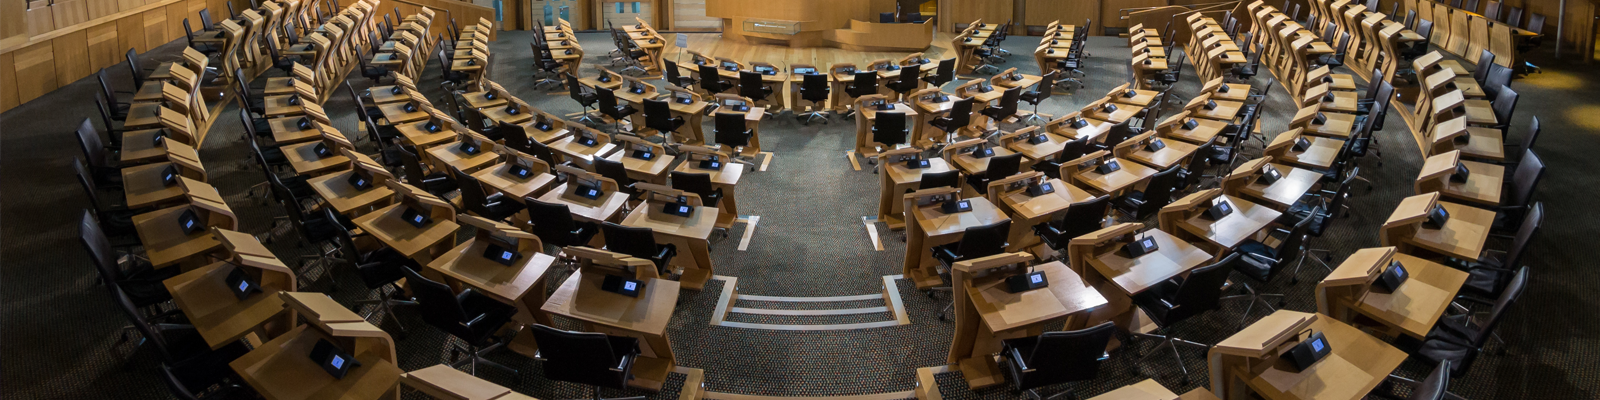 holyrood-chamber-400px.png